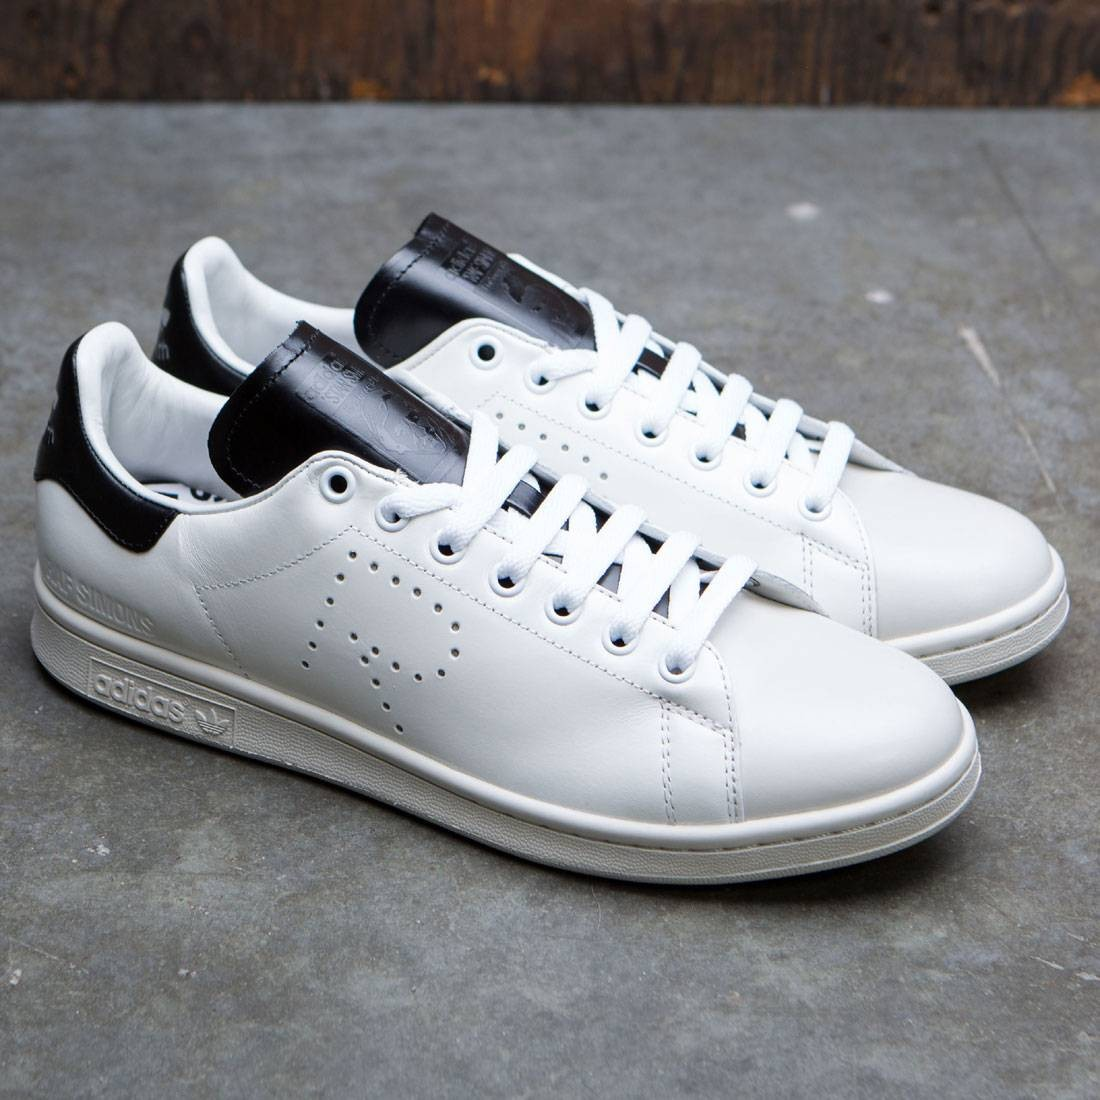 uk availability e01f5 a34b8 ADIDAS X RAF SIMONS STAN SMITH OPTIC WHITE/CORE BLACK